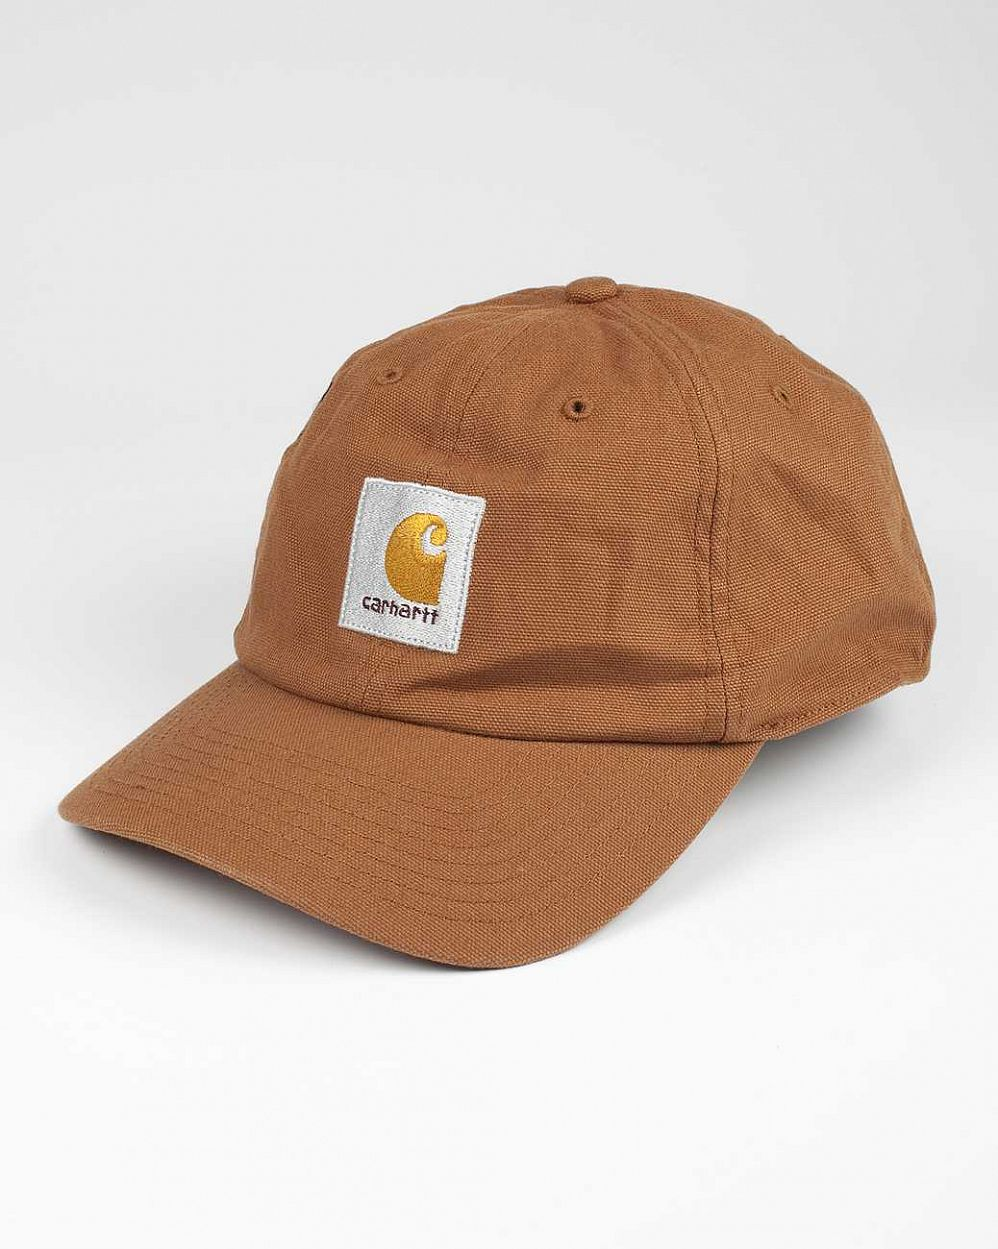 Бейсболка Carhartt A146 Cap Brown отзывы